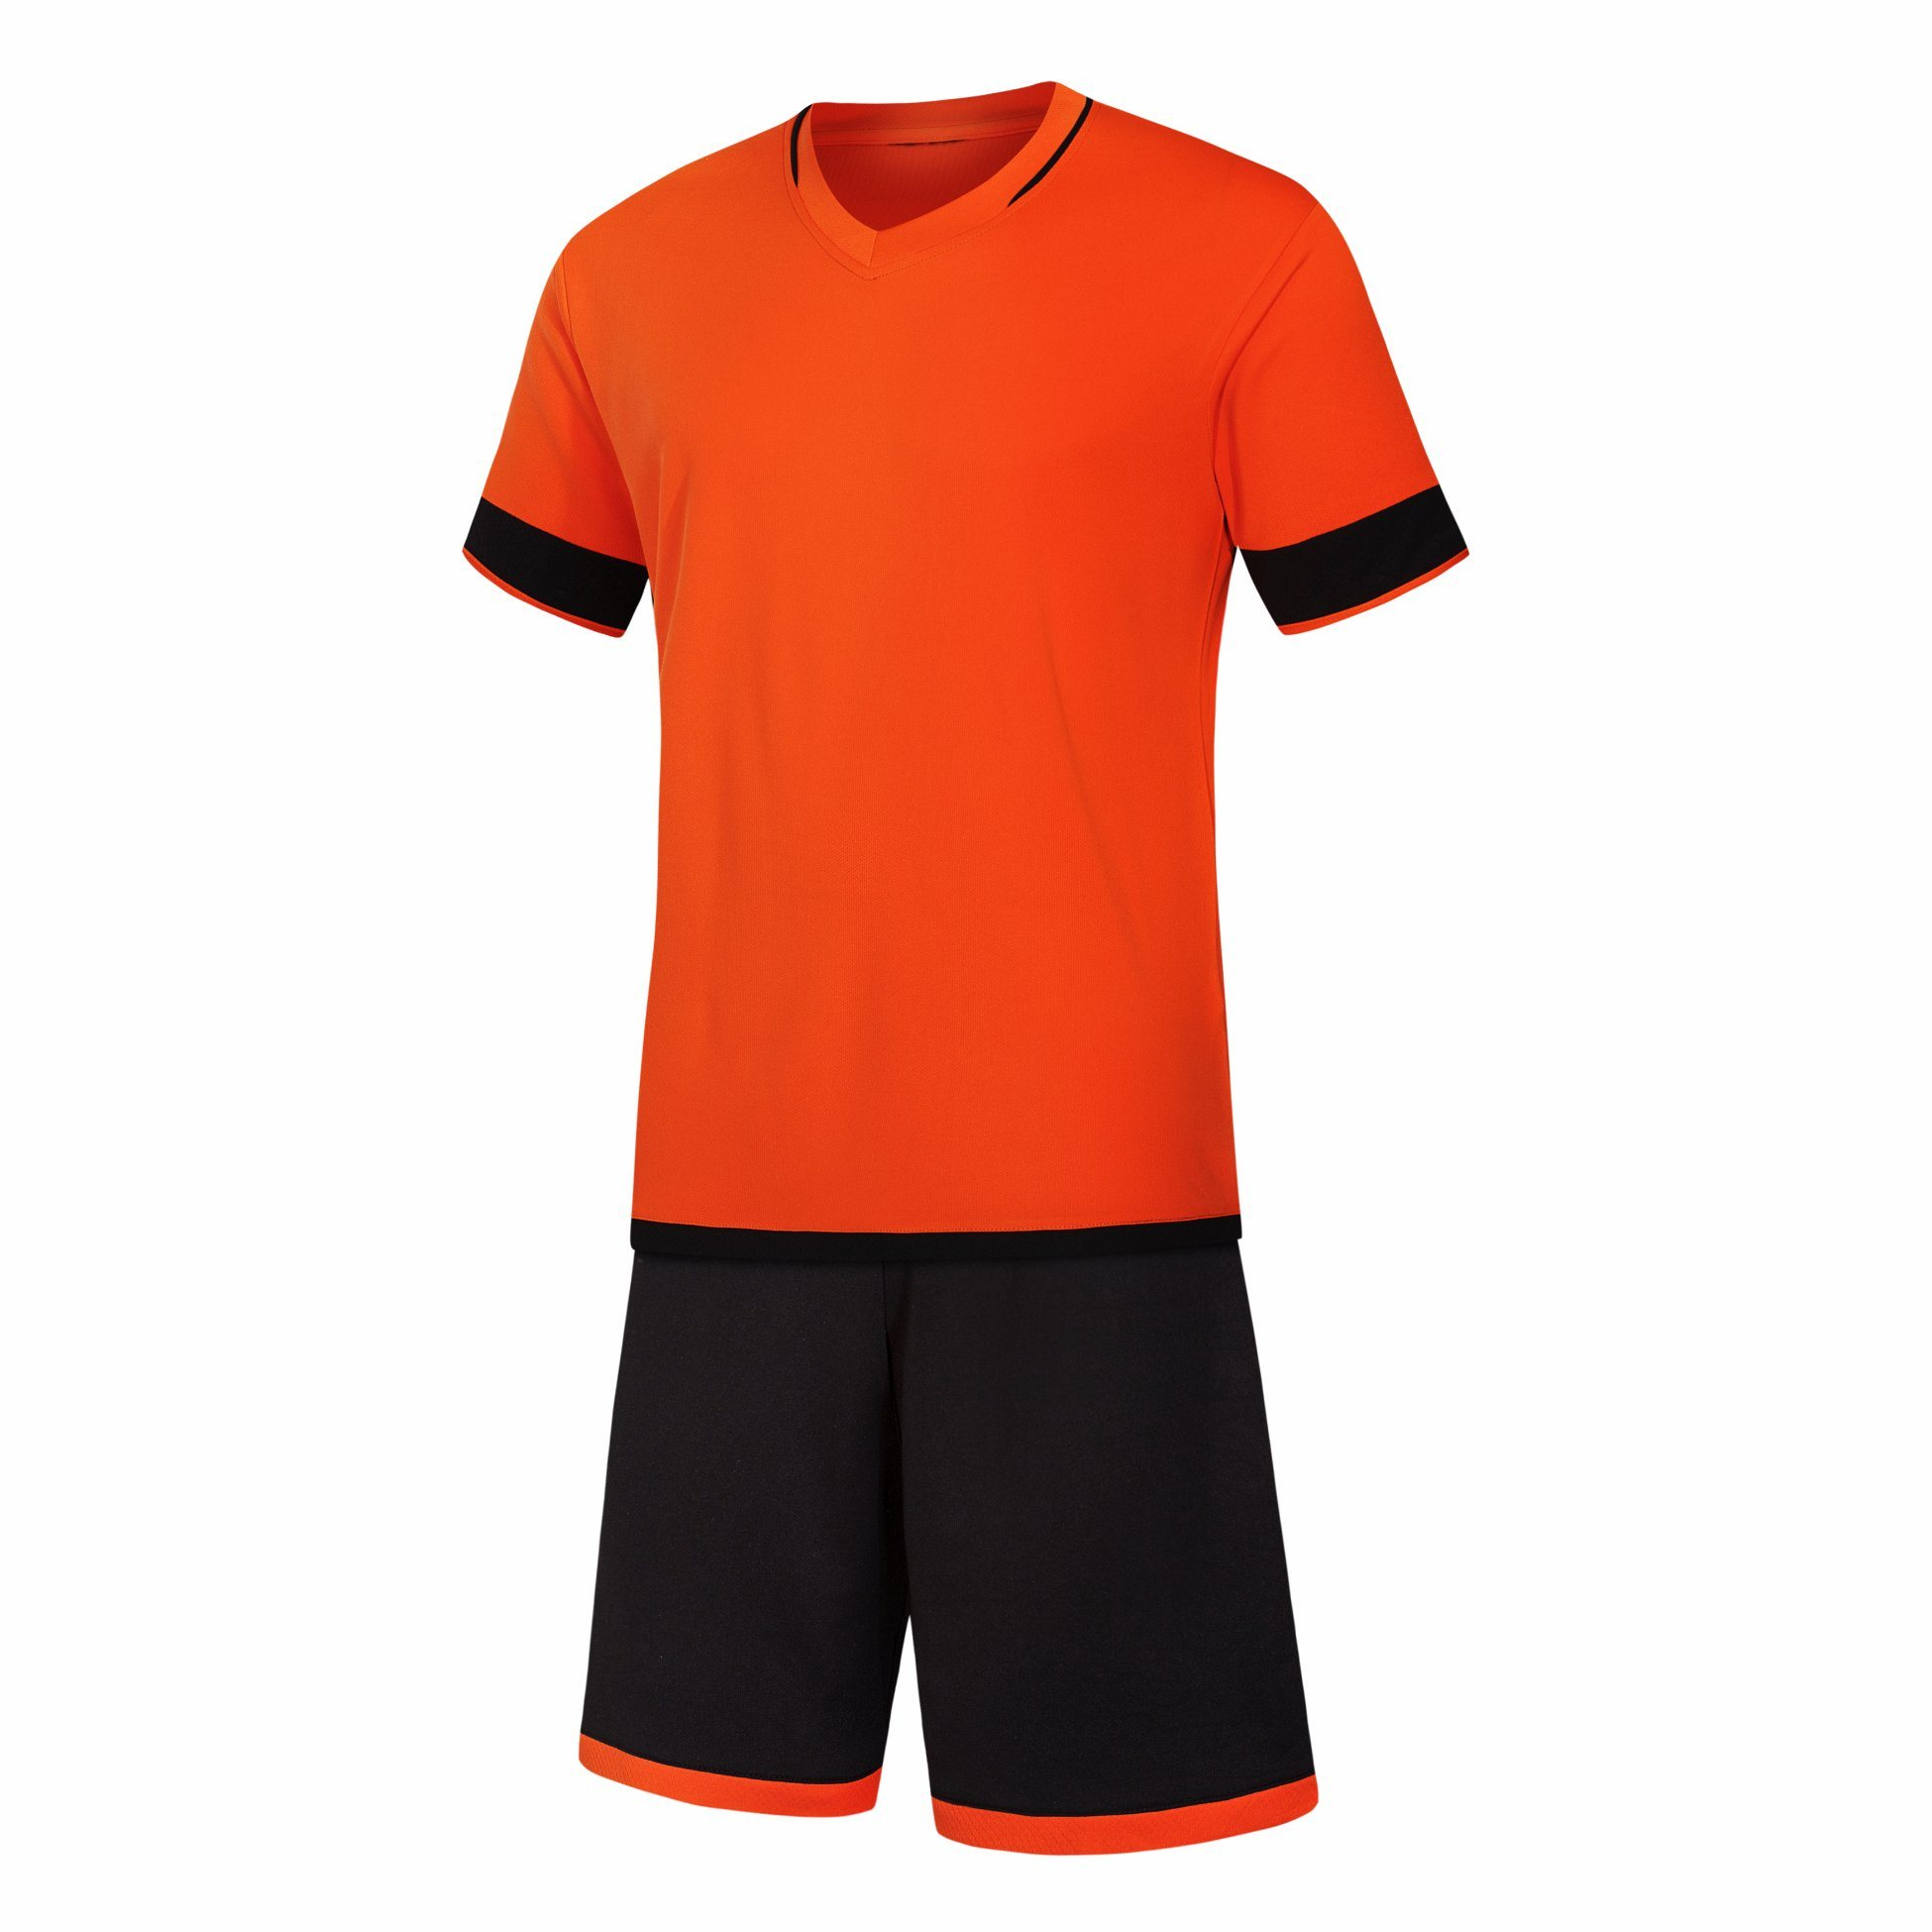 China Top Customize Training Soccer Jersey Kits 9d1a79837